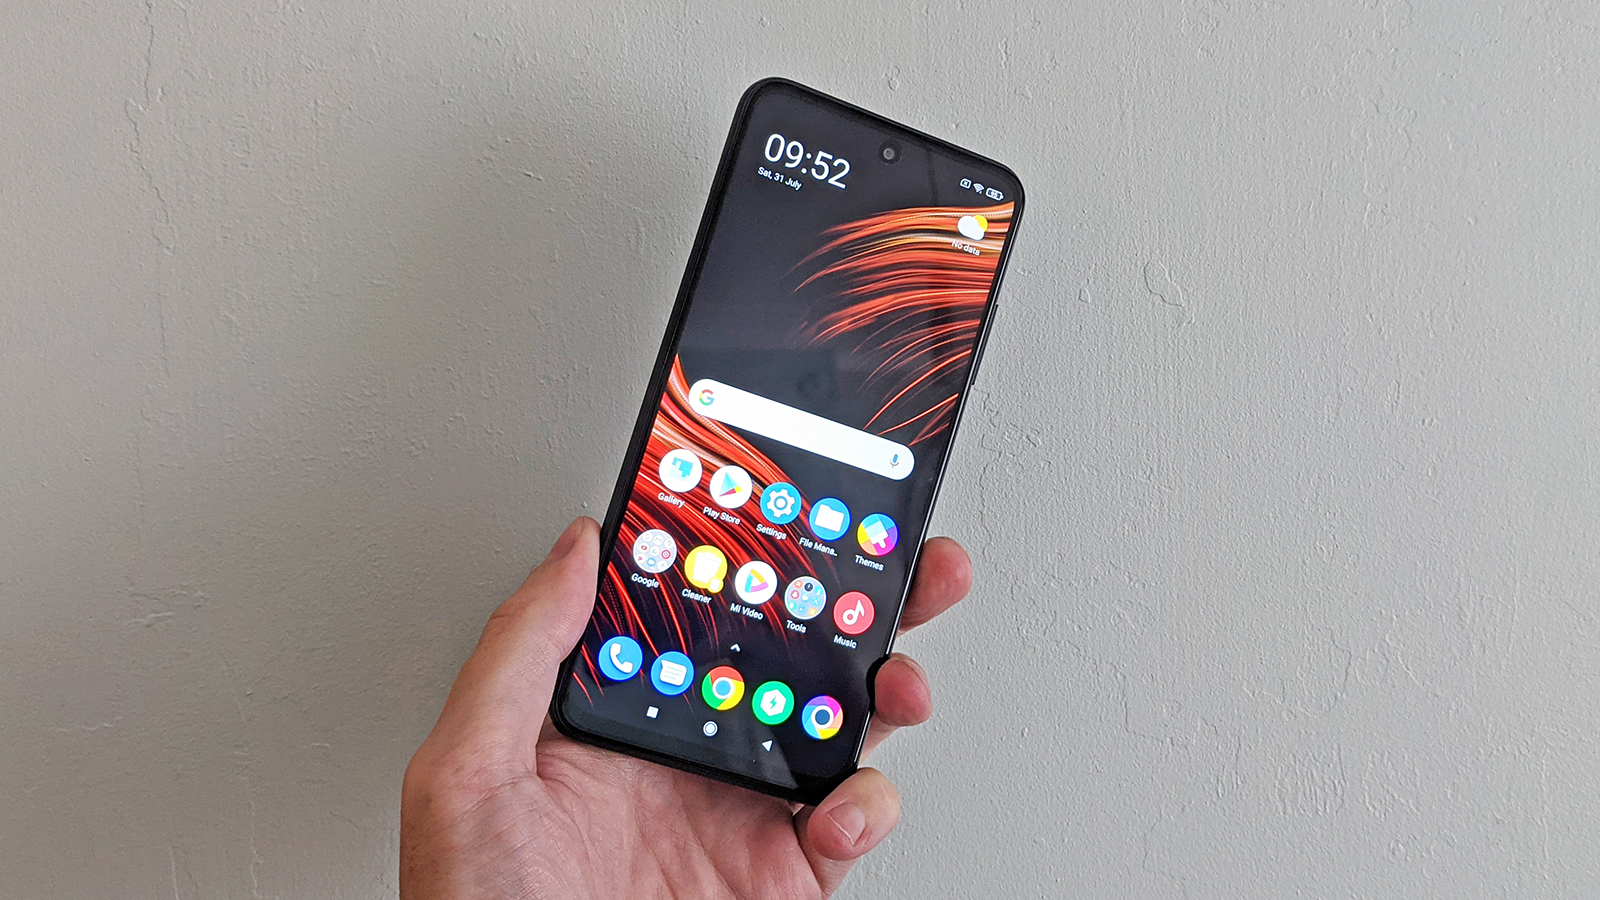 The Poco M3 Pro 5G from the front, held in someone's hand